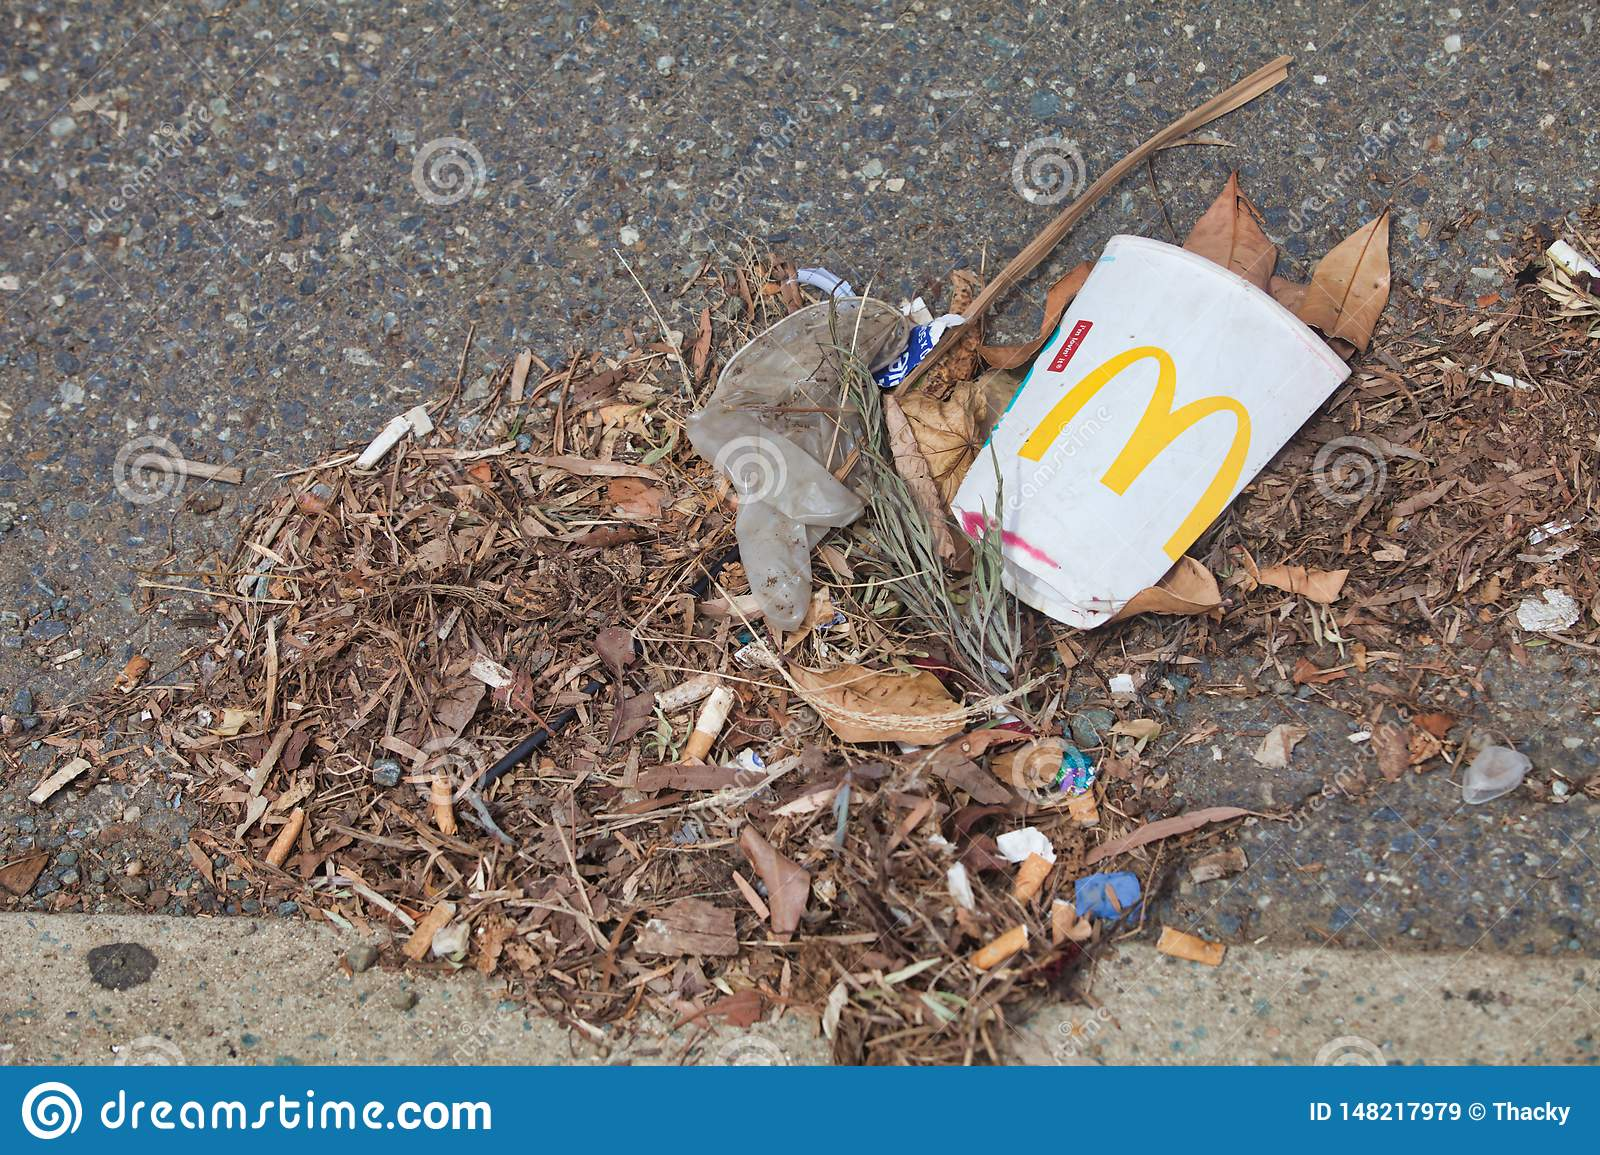 McDonalds empty cup and litter left by the side of the road